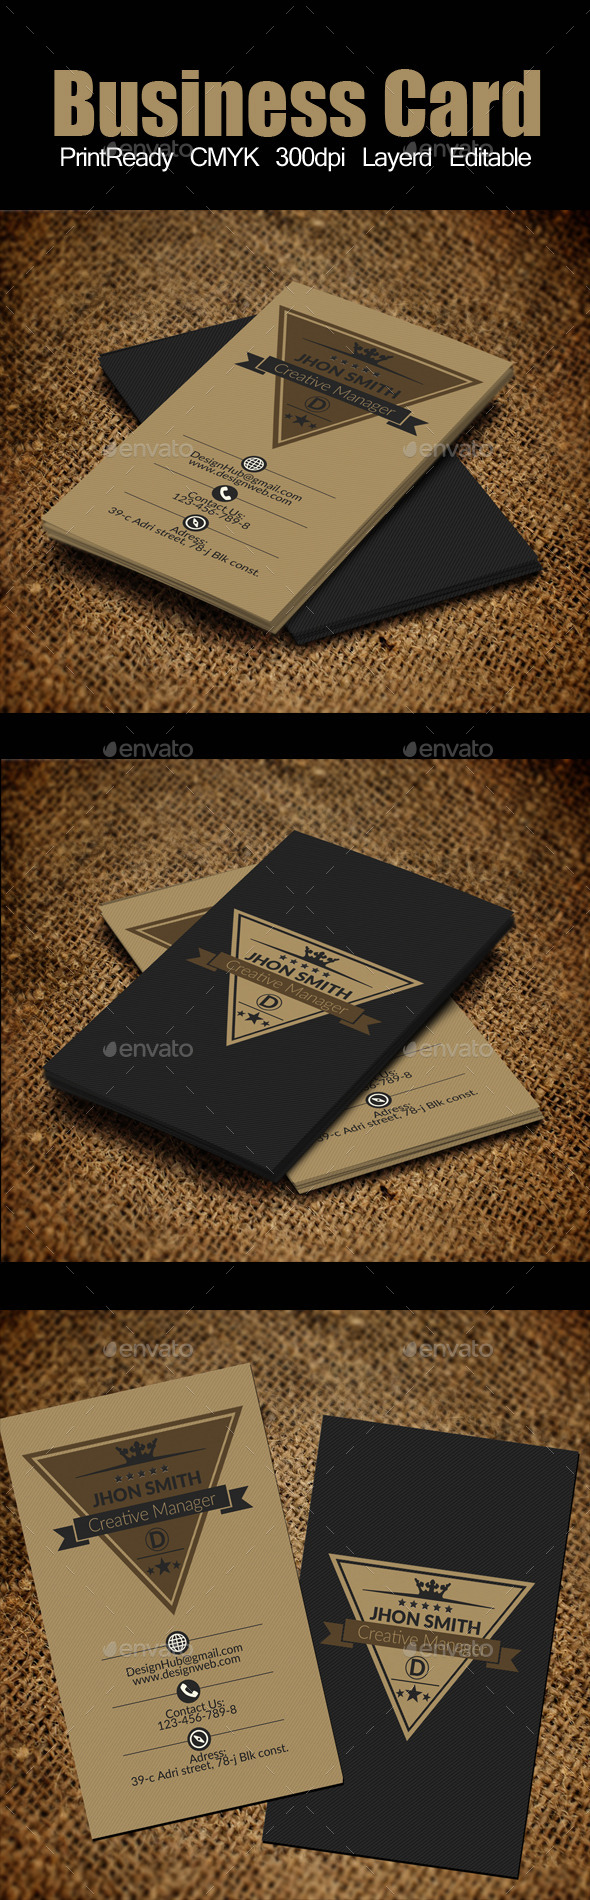 vertical Retro Vintage Business Card Template - Corporate Business Cards